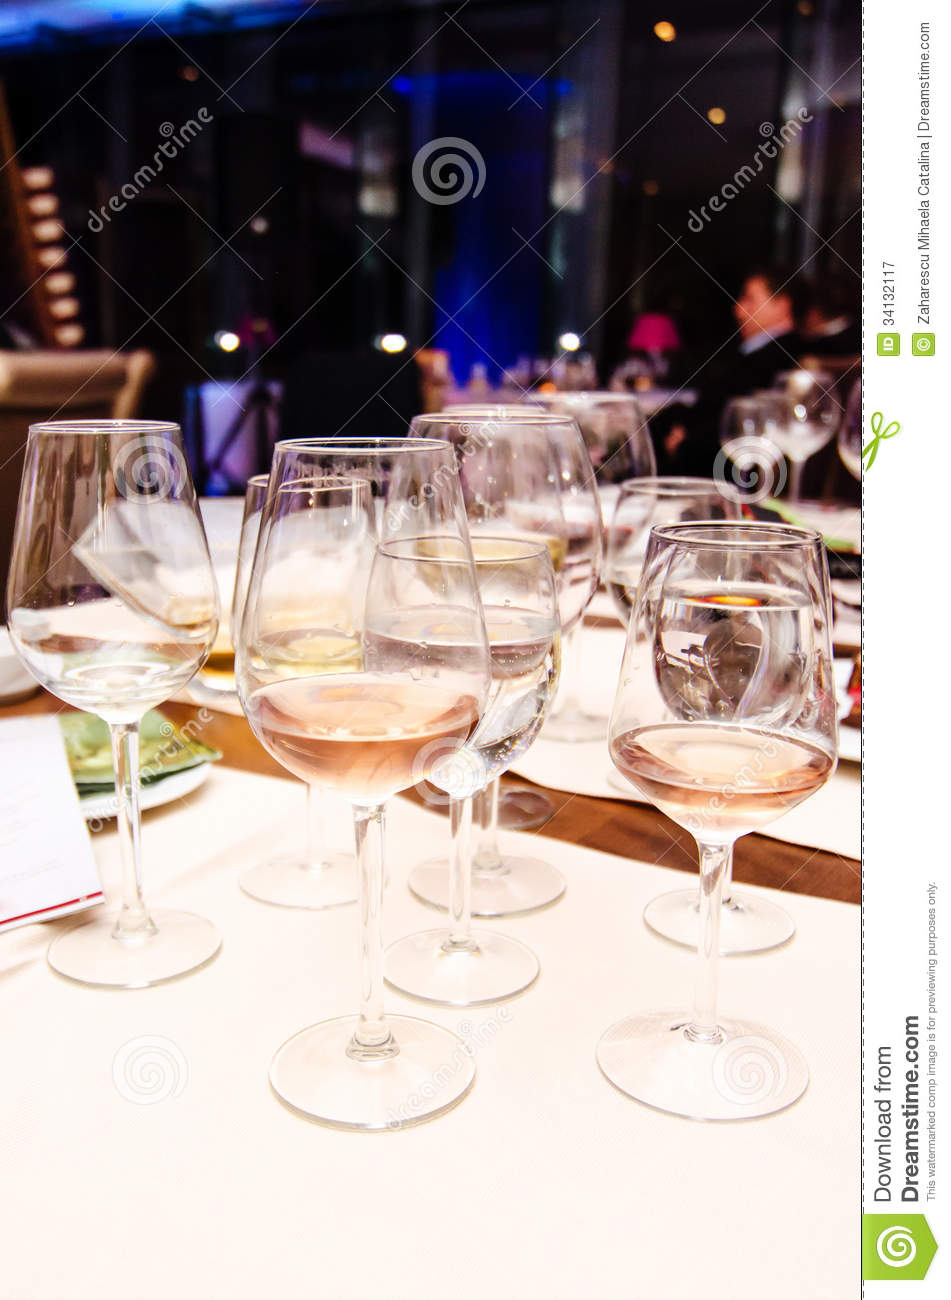 How to Write a Business Plan for a Wine Bar